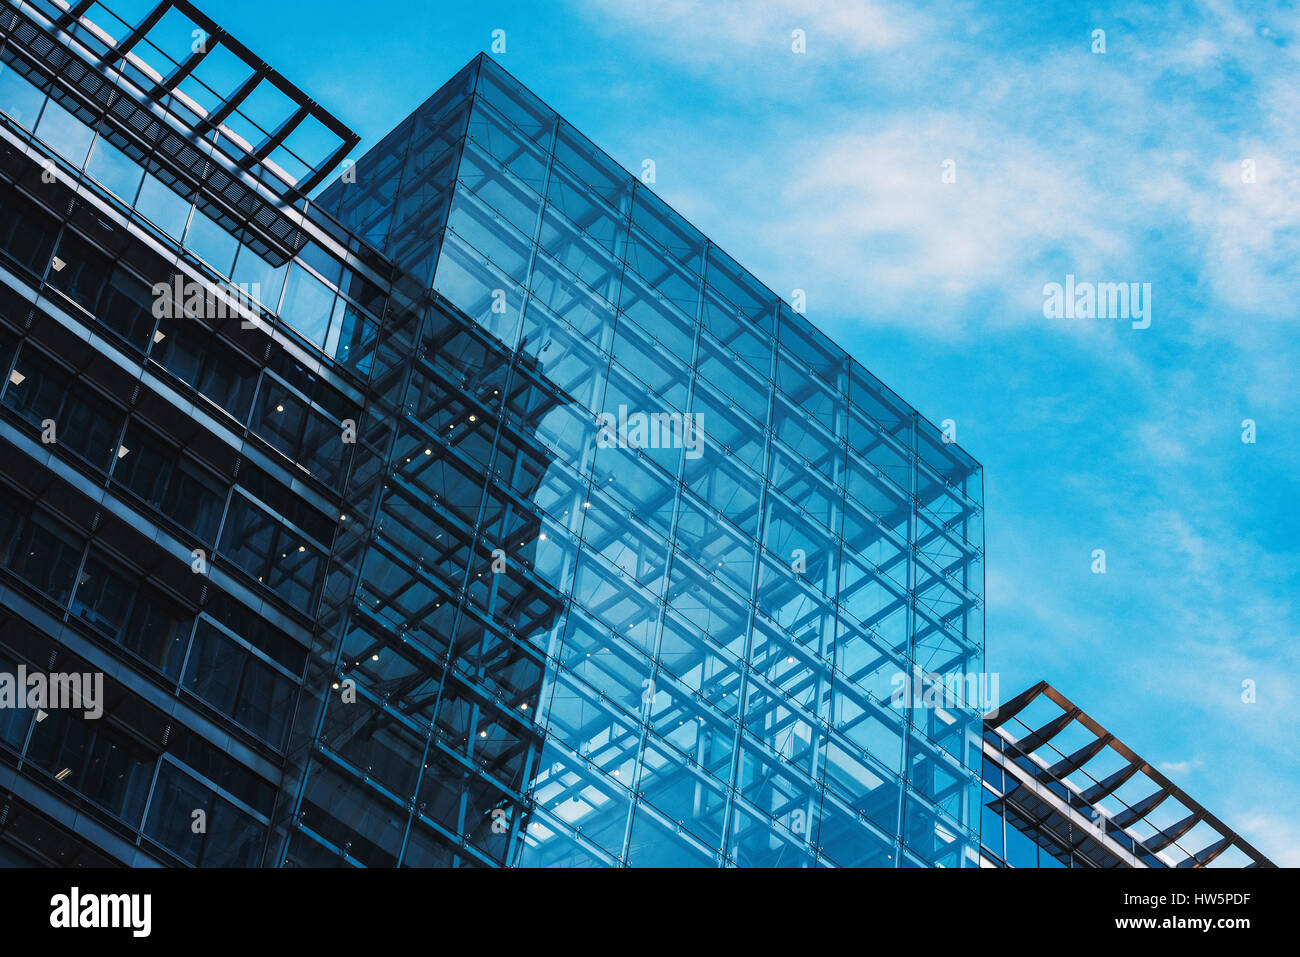 Low Angle View To Light Glass Buildings Of Business Center: Modern Glass Buildings In A Business Area Stock Photo